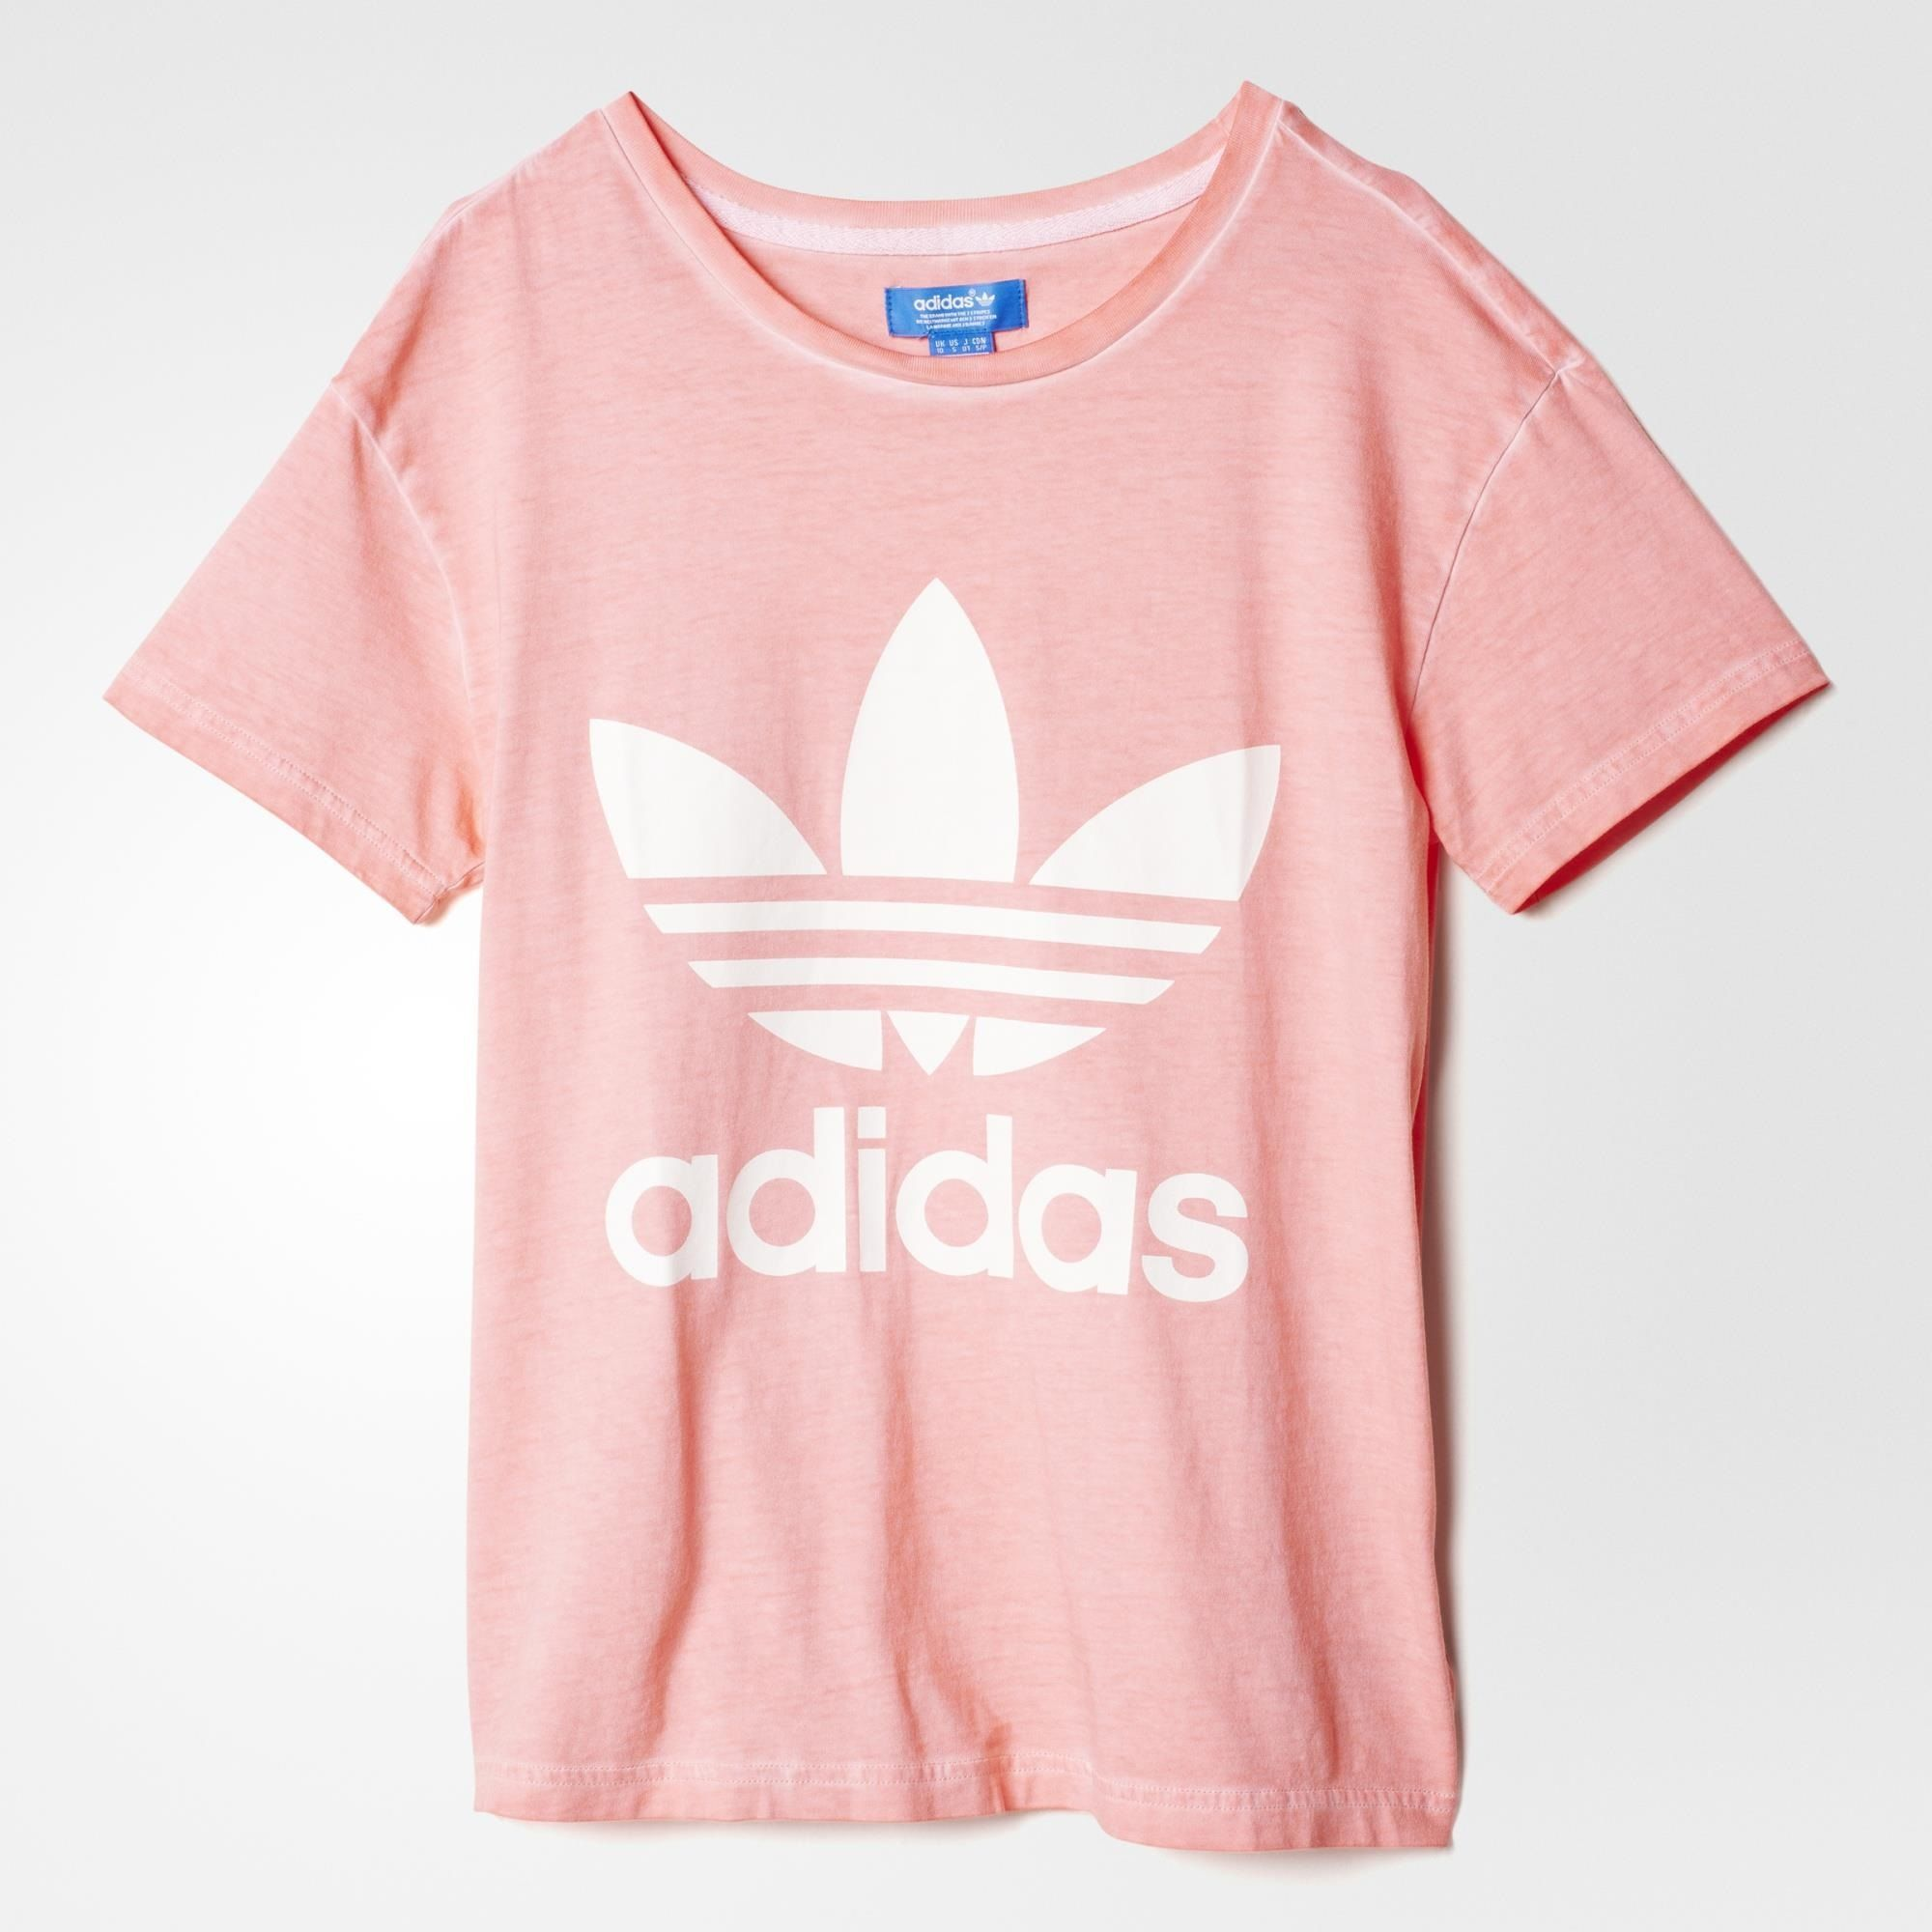 adidas Premium Essentials Washed T Shirt Peach Pink